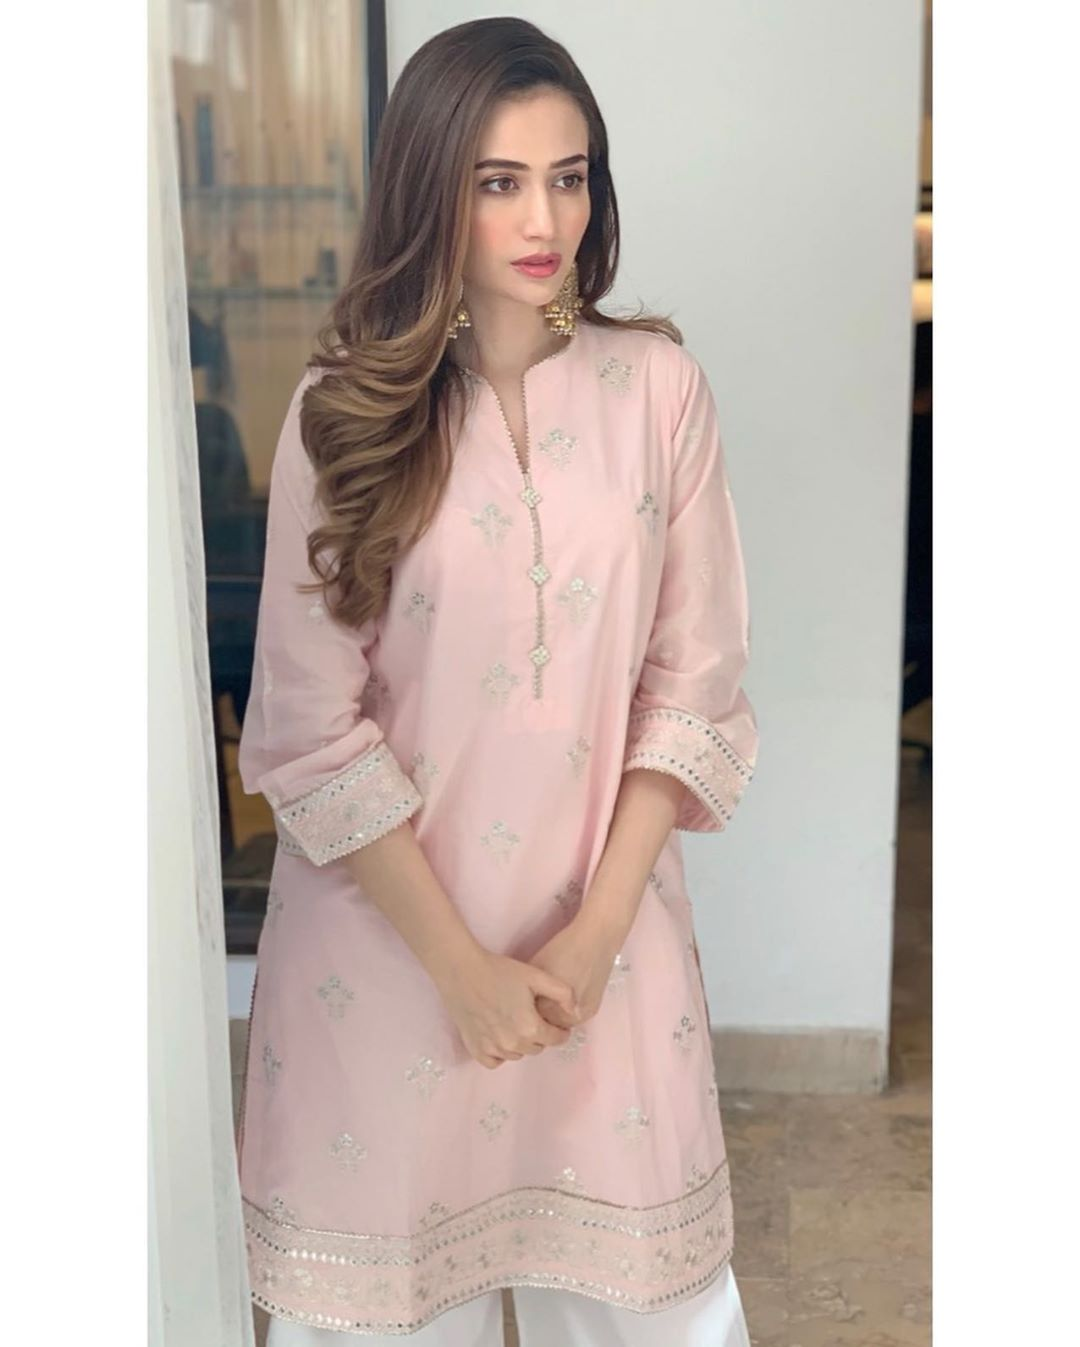 Awesome Pictures of Beautiful Sana Javed